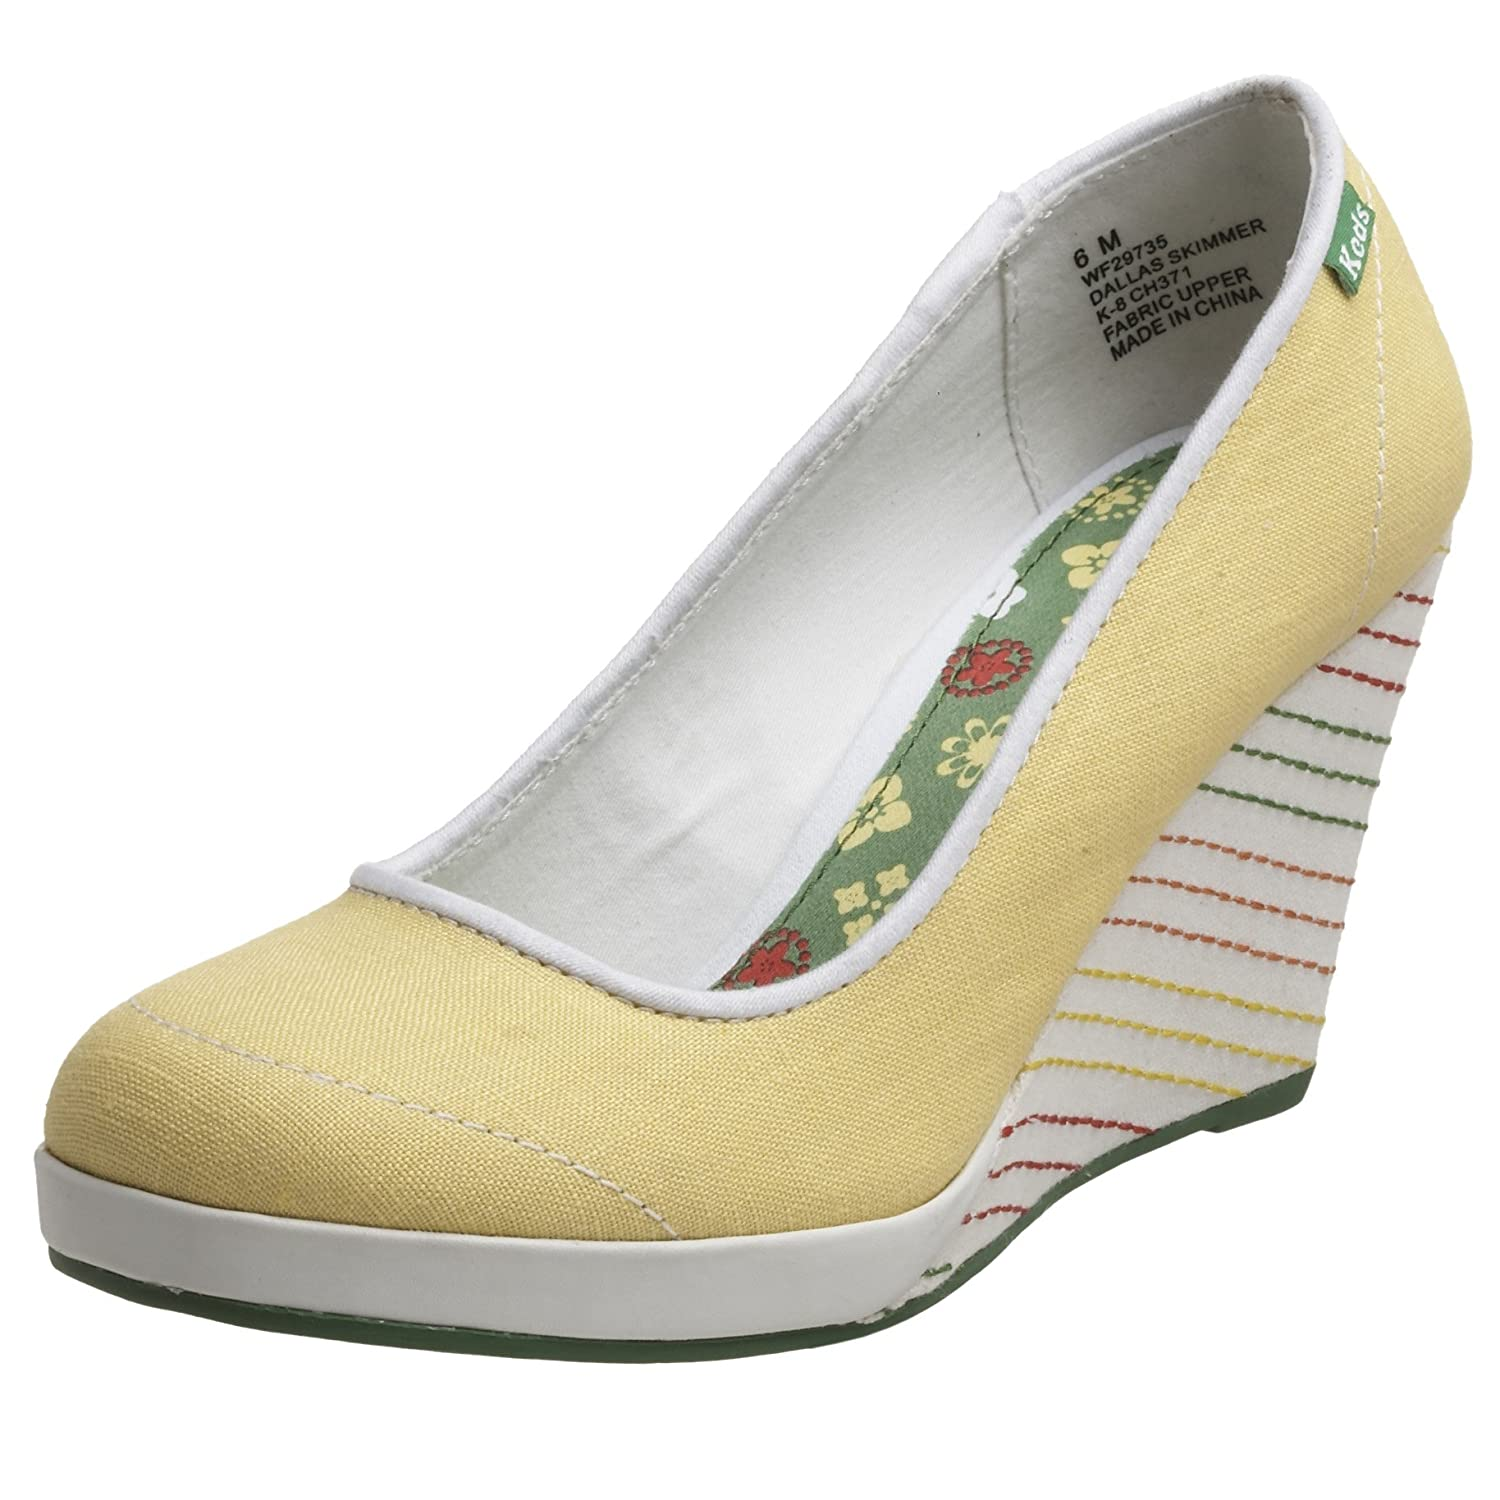 Keds Women's Dallas Skimmer Wedge - Free Overnight Shipping & Return Shipping: Endless.com from endless.com